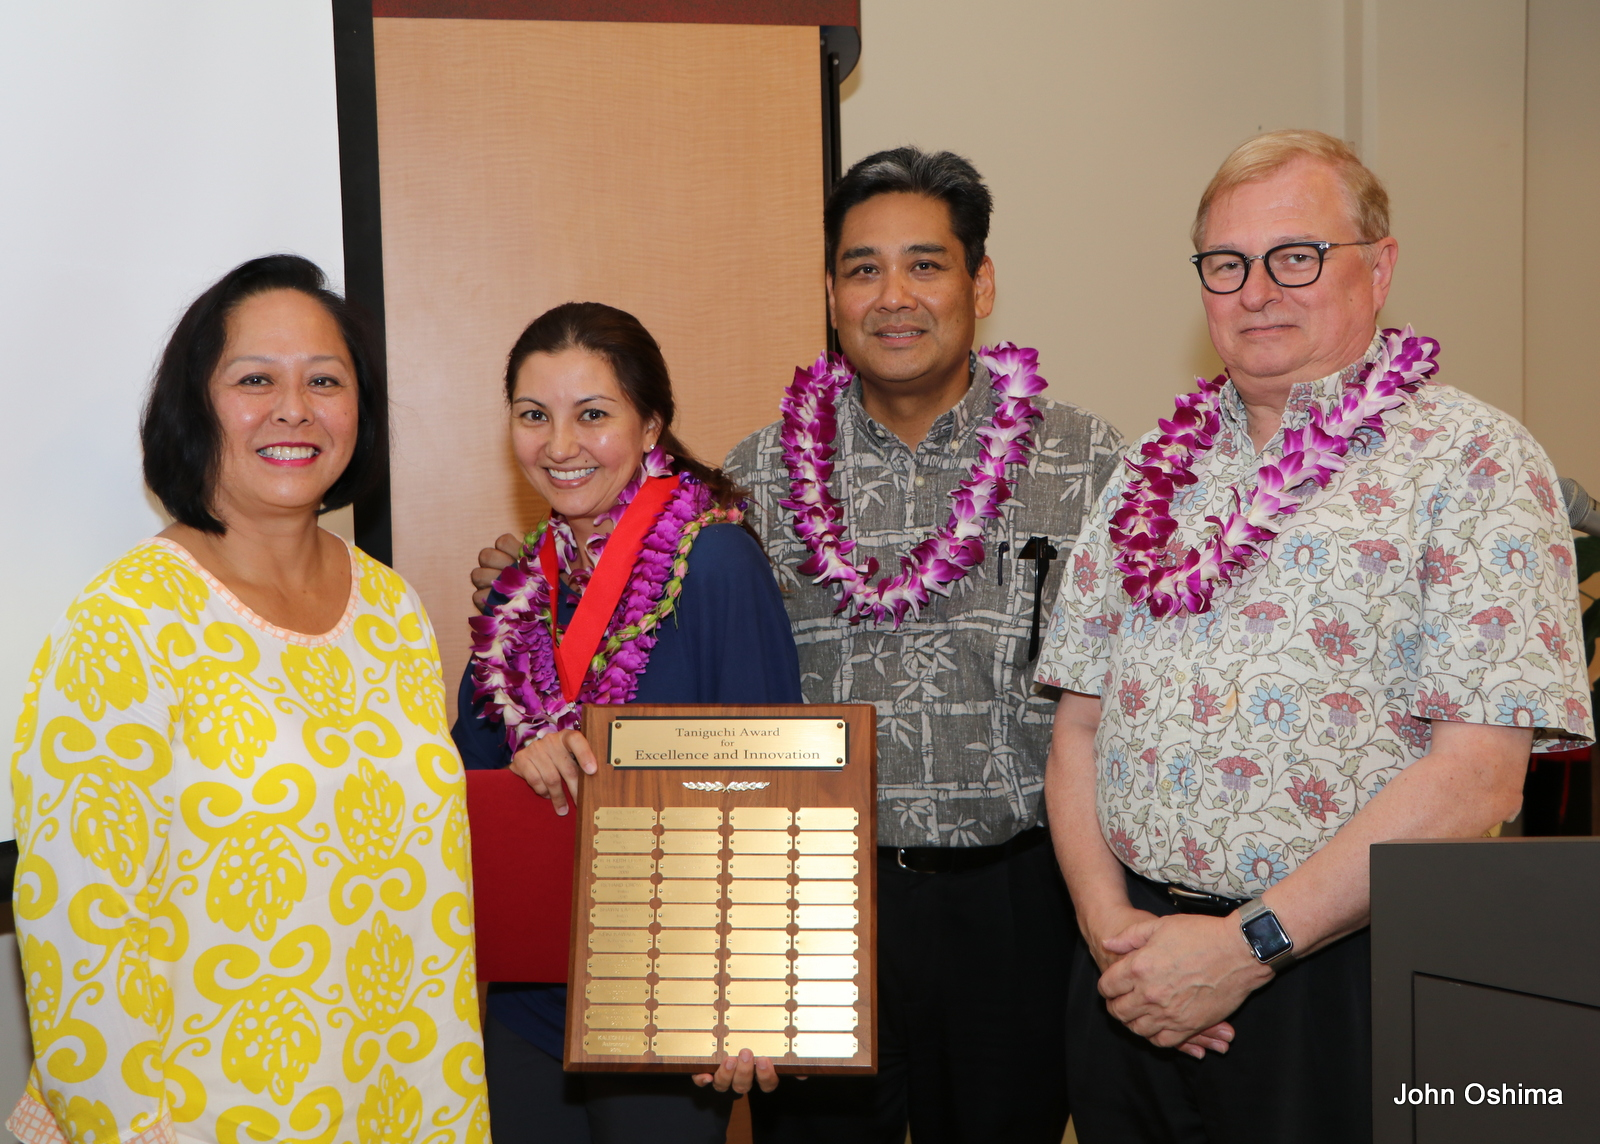 Group stand together, award recipient, donor and chancellor with lei. Lara Gomez hold large plaque.